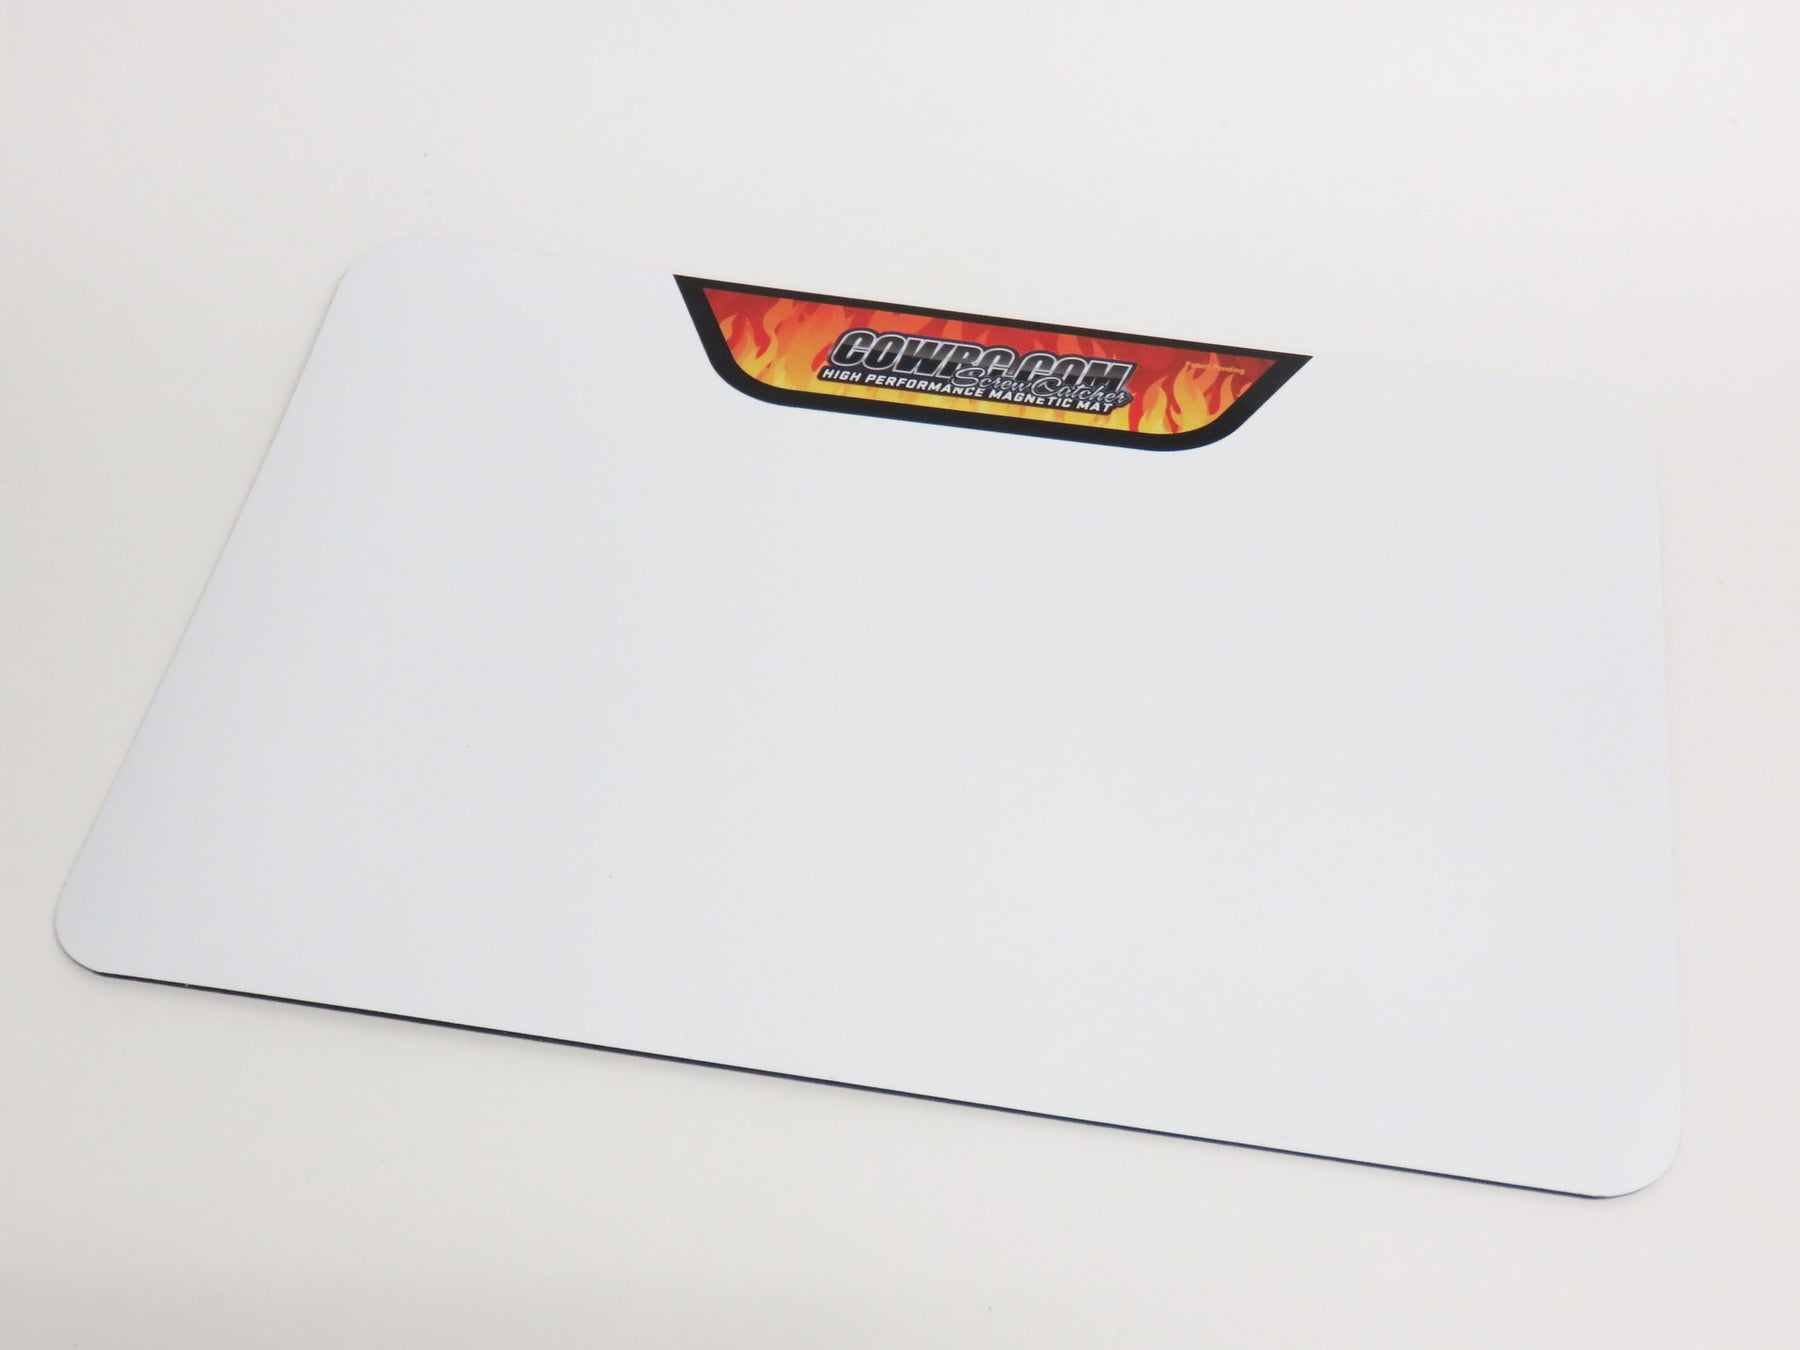 CowRC Pro Mag Medium Screw Catcher Flat Mat 12x18 With Flame Decal